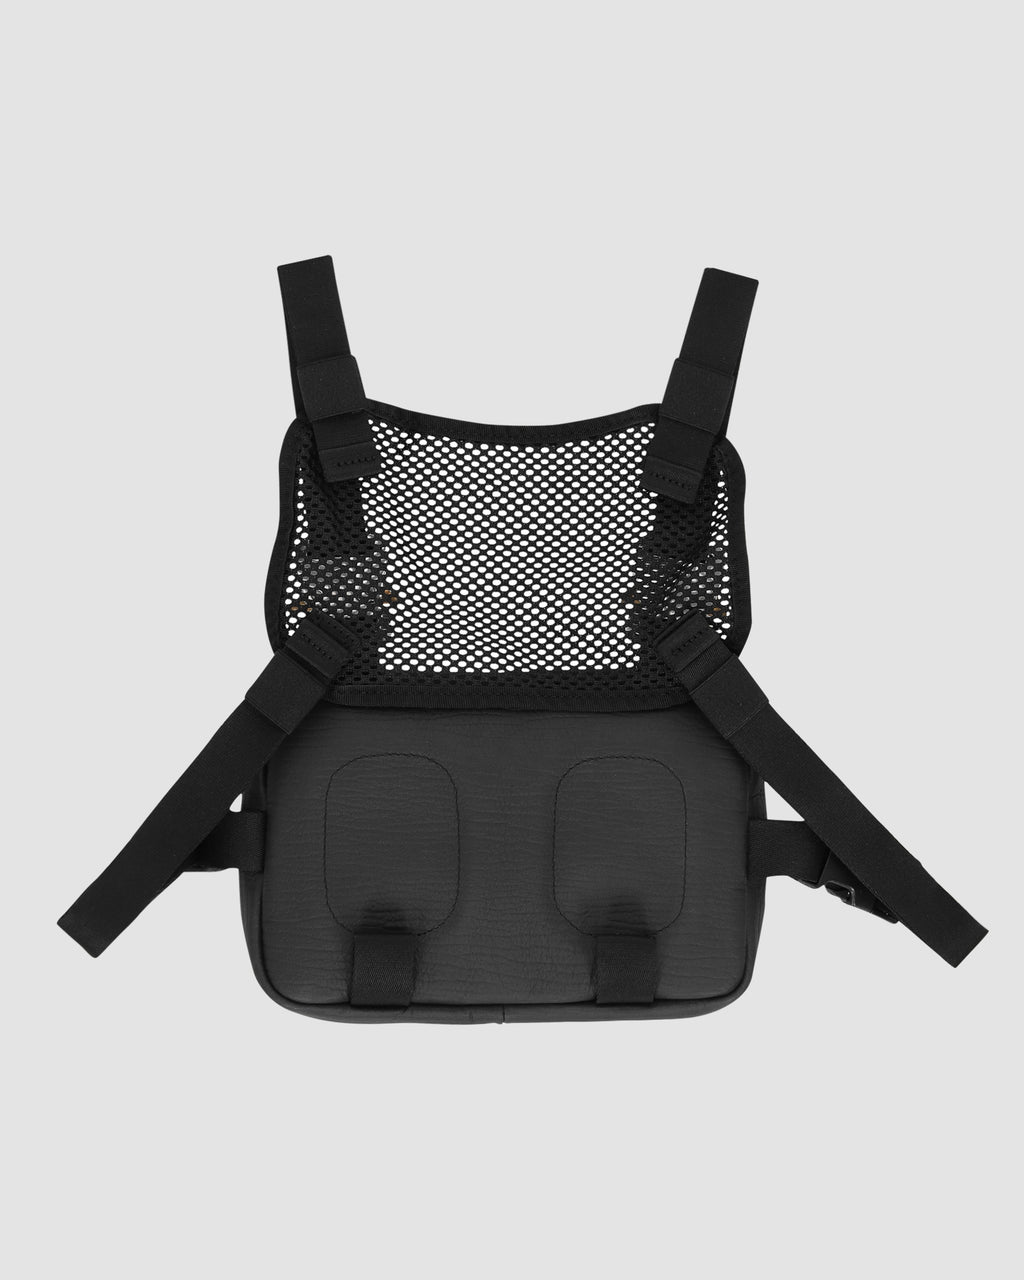 1017 ALYX 9SM | CLASSIC MINI CHEST RIG | Chest Rig | Accessories, BLACK, CHEST BAGS, CHEST RIG, Google Shopping, Man, S20, S20 Drop II, UNISEX, Woman